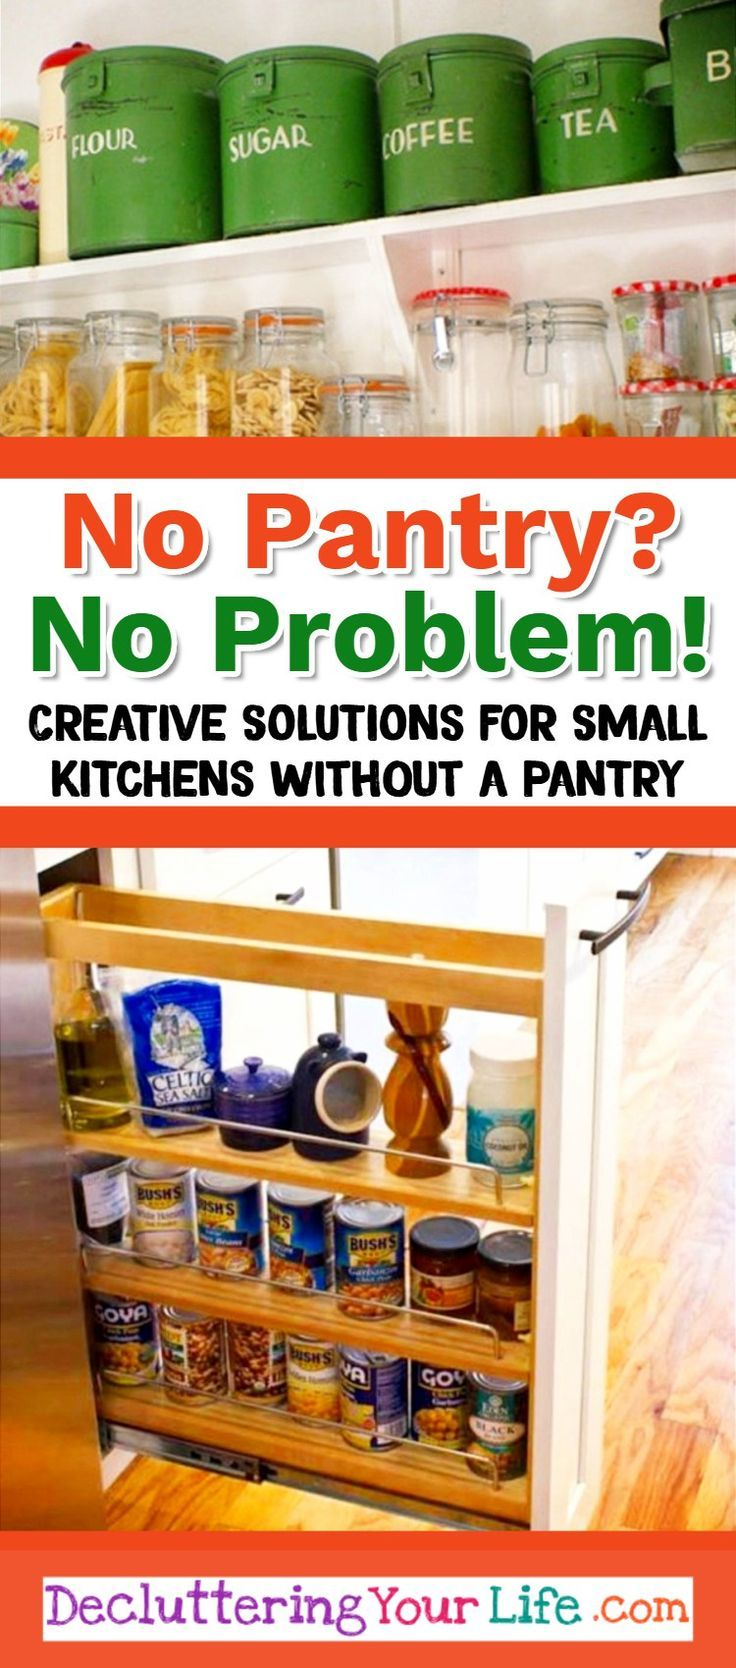 No Pantry How To Organize A Small Kitchen Without A Pantry Decluttering Your Life Kitchen Without Pantry No Pantry Solutions Small Pantry Organization